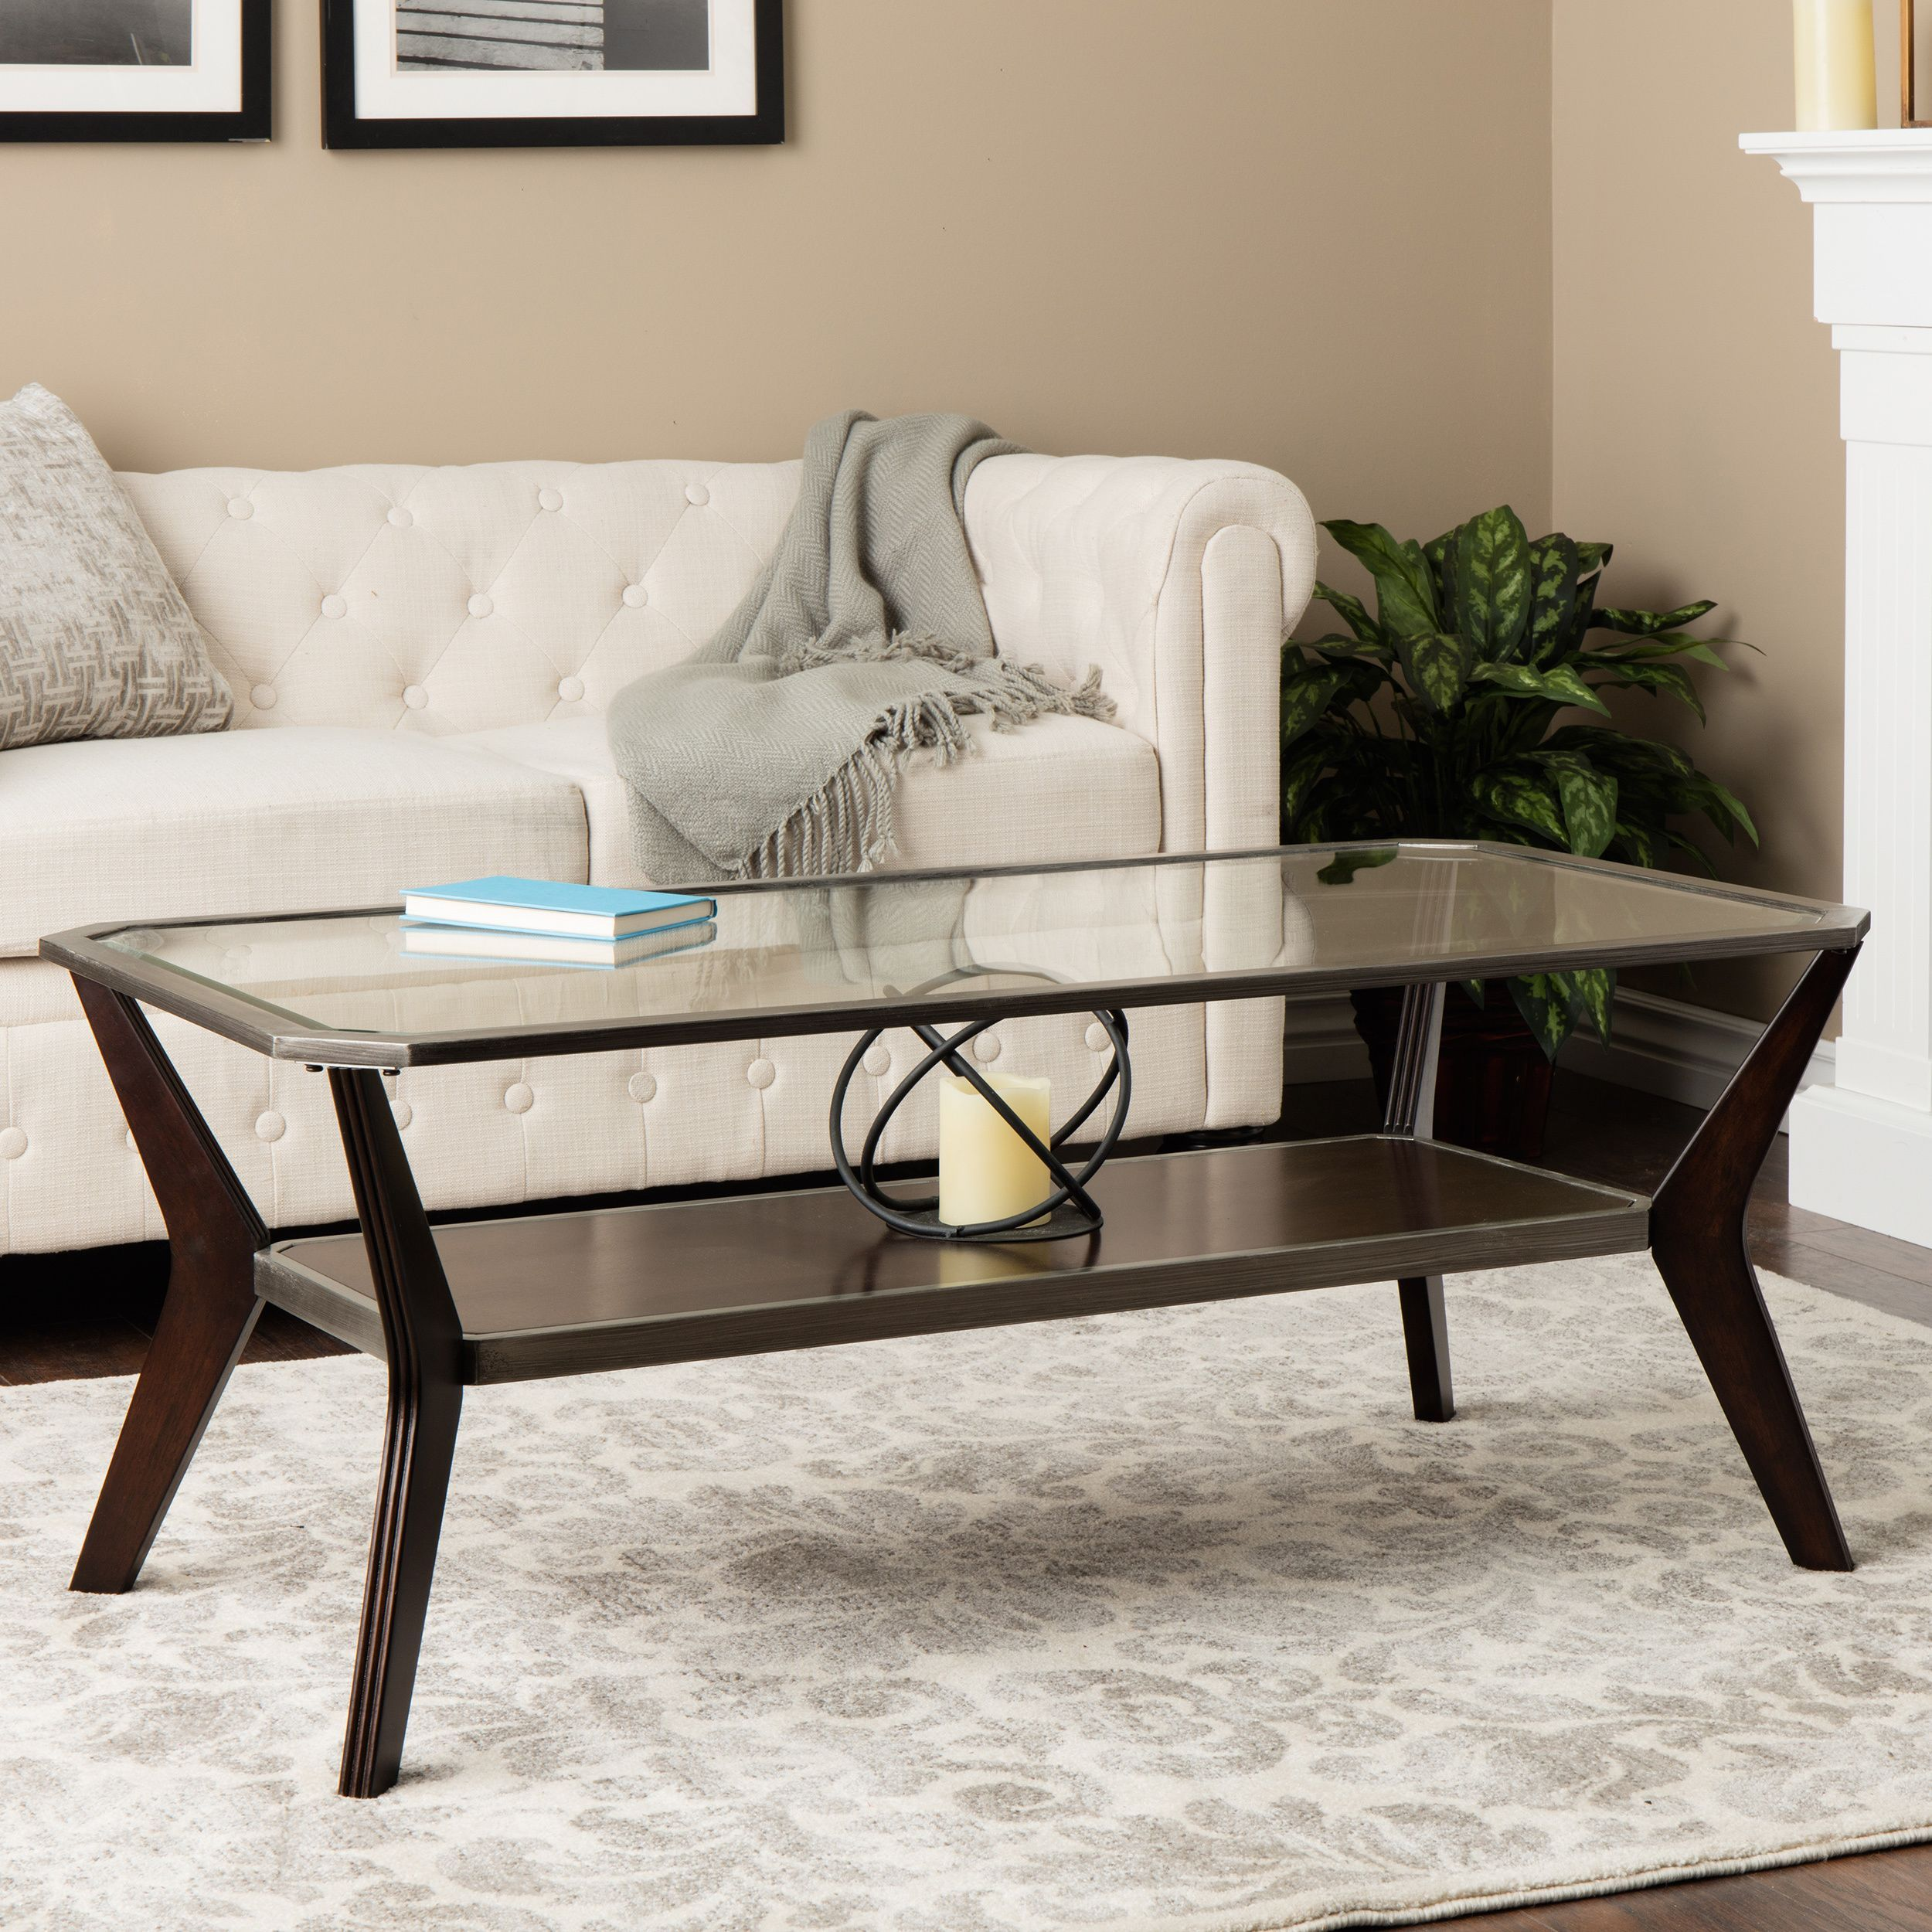 The Boomerang Coffee Table Features A Stylish Metal And Wood Construction  With A Clear Glass Top. This Coffee Table Also Highlights A Rich Espresso  Stain ...